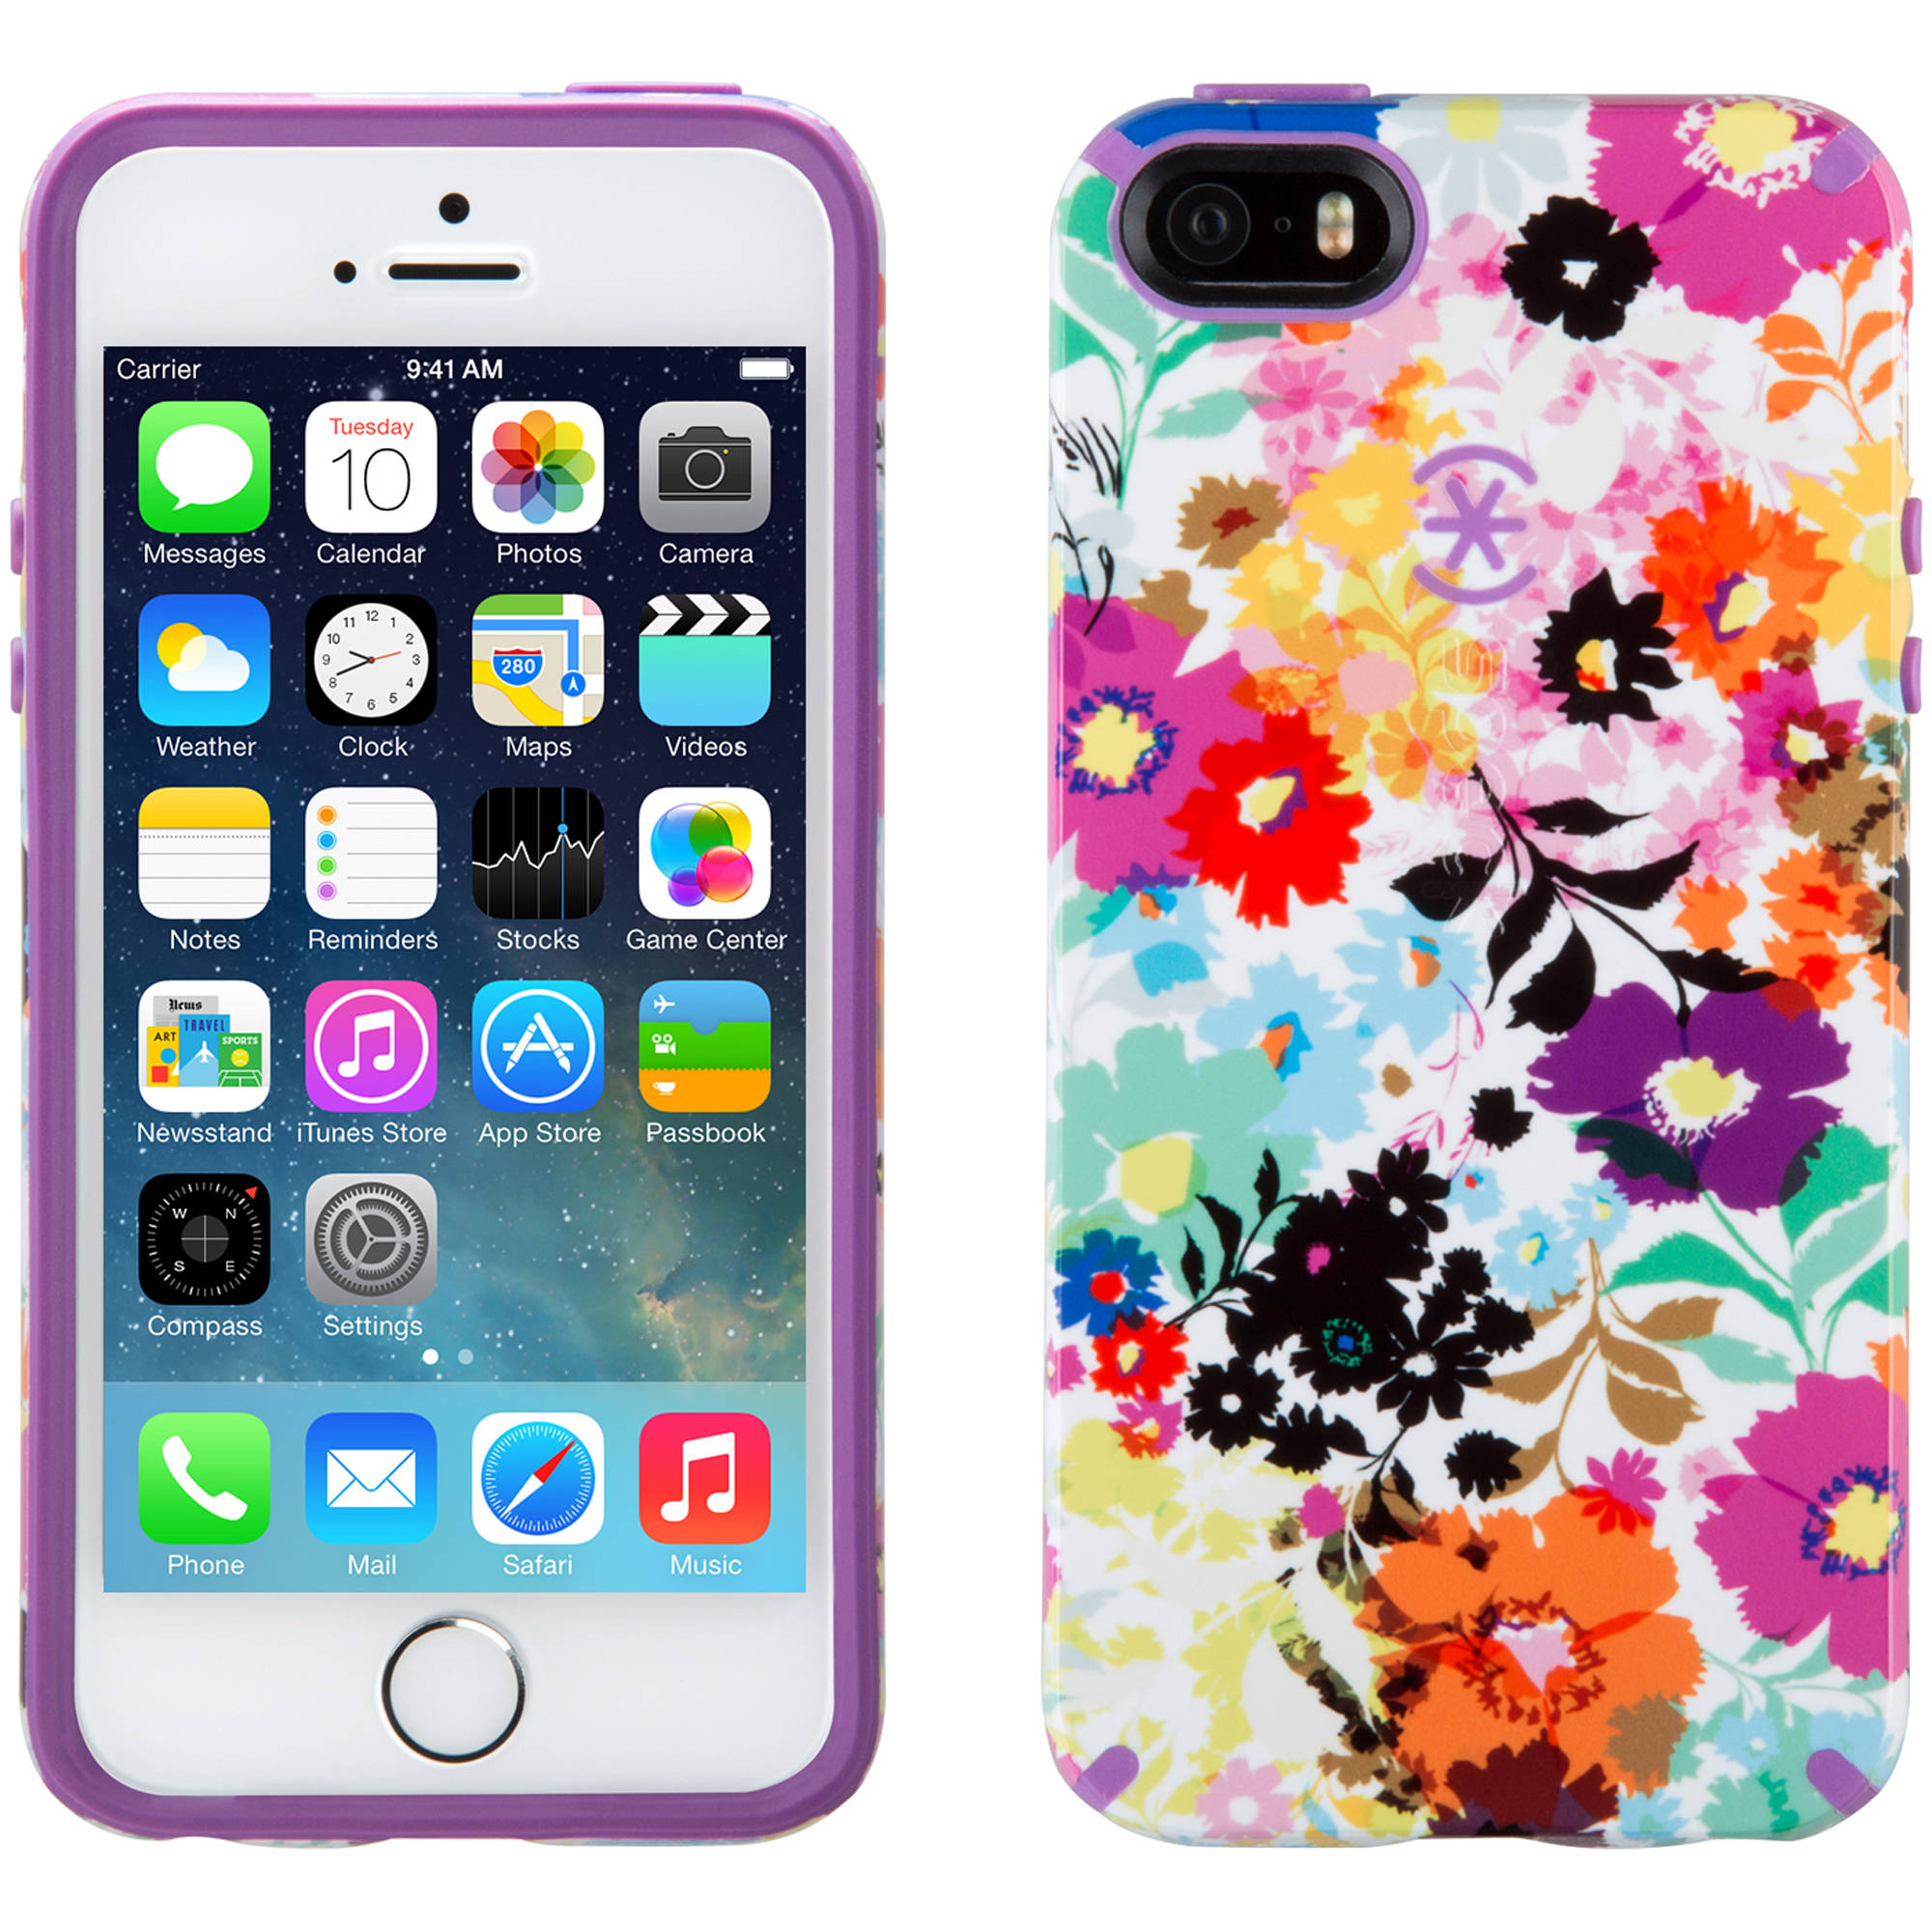 Speck Spk-a2752 Apple iPhone 5SE/5s CandyShell Inked Case